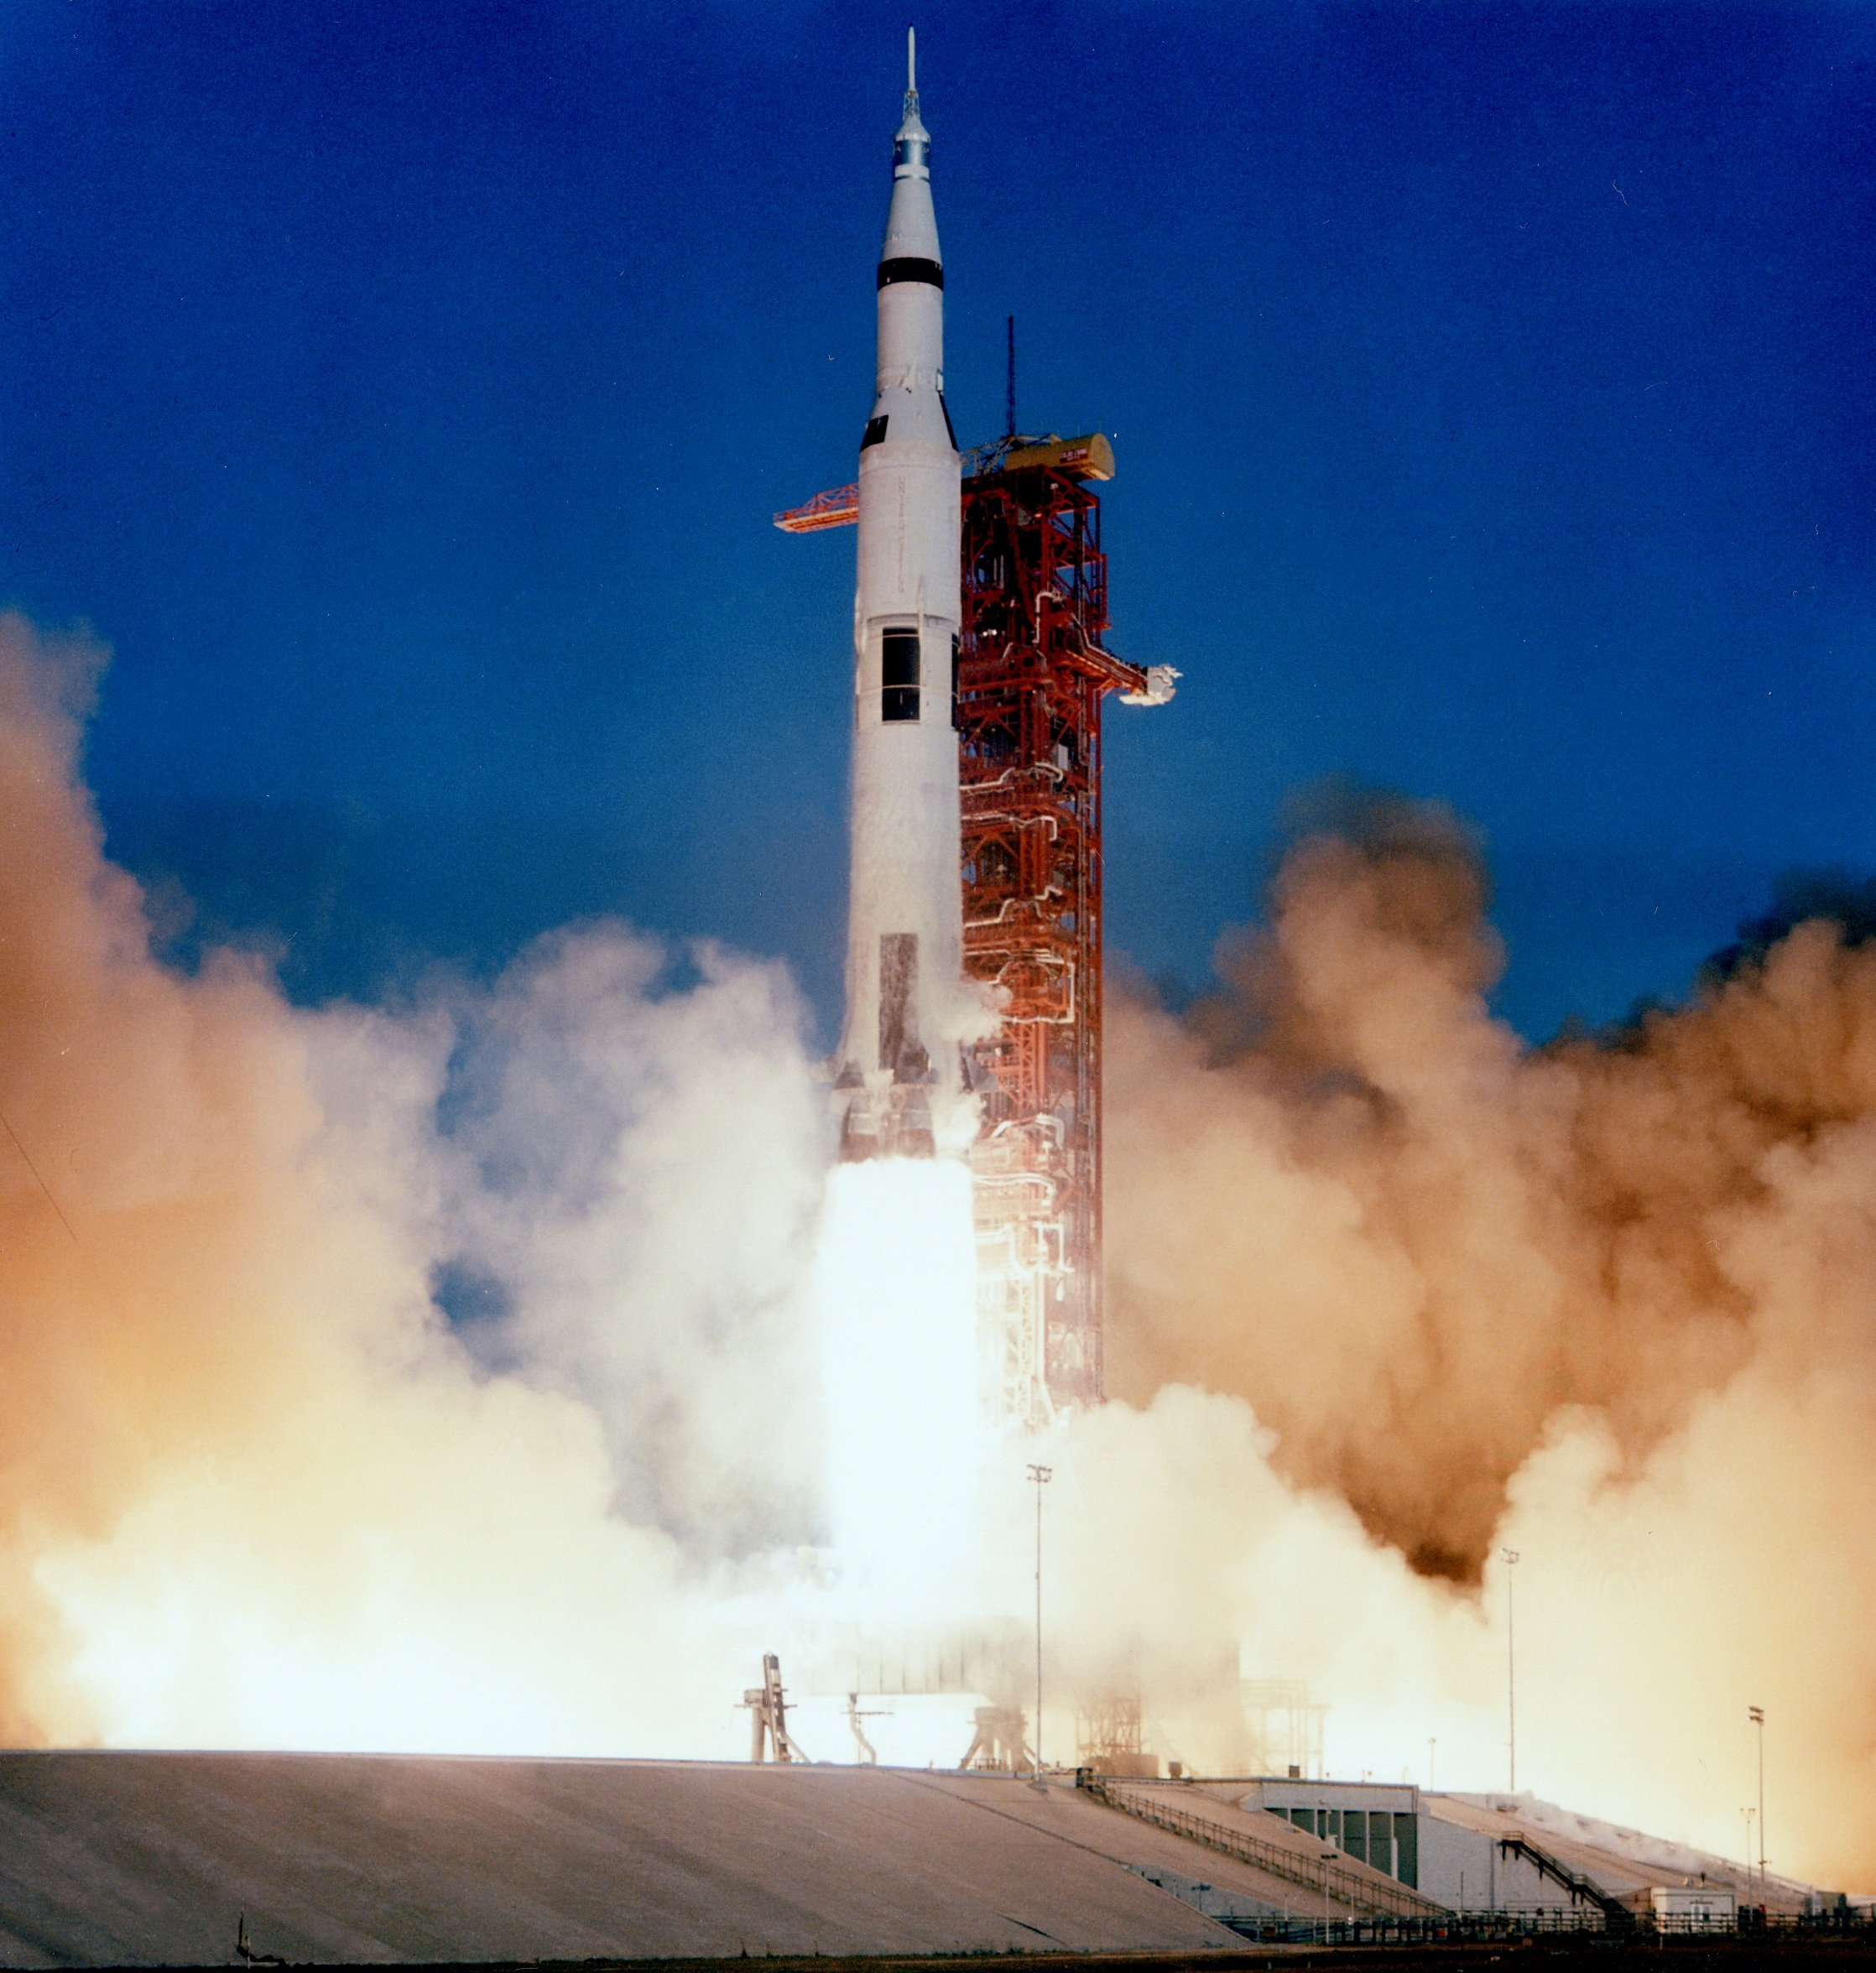 Apollo 8 liftoff on December 21, 1968.